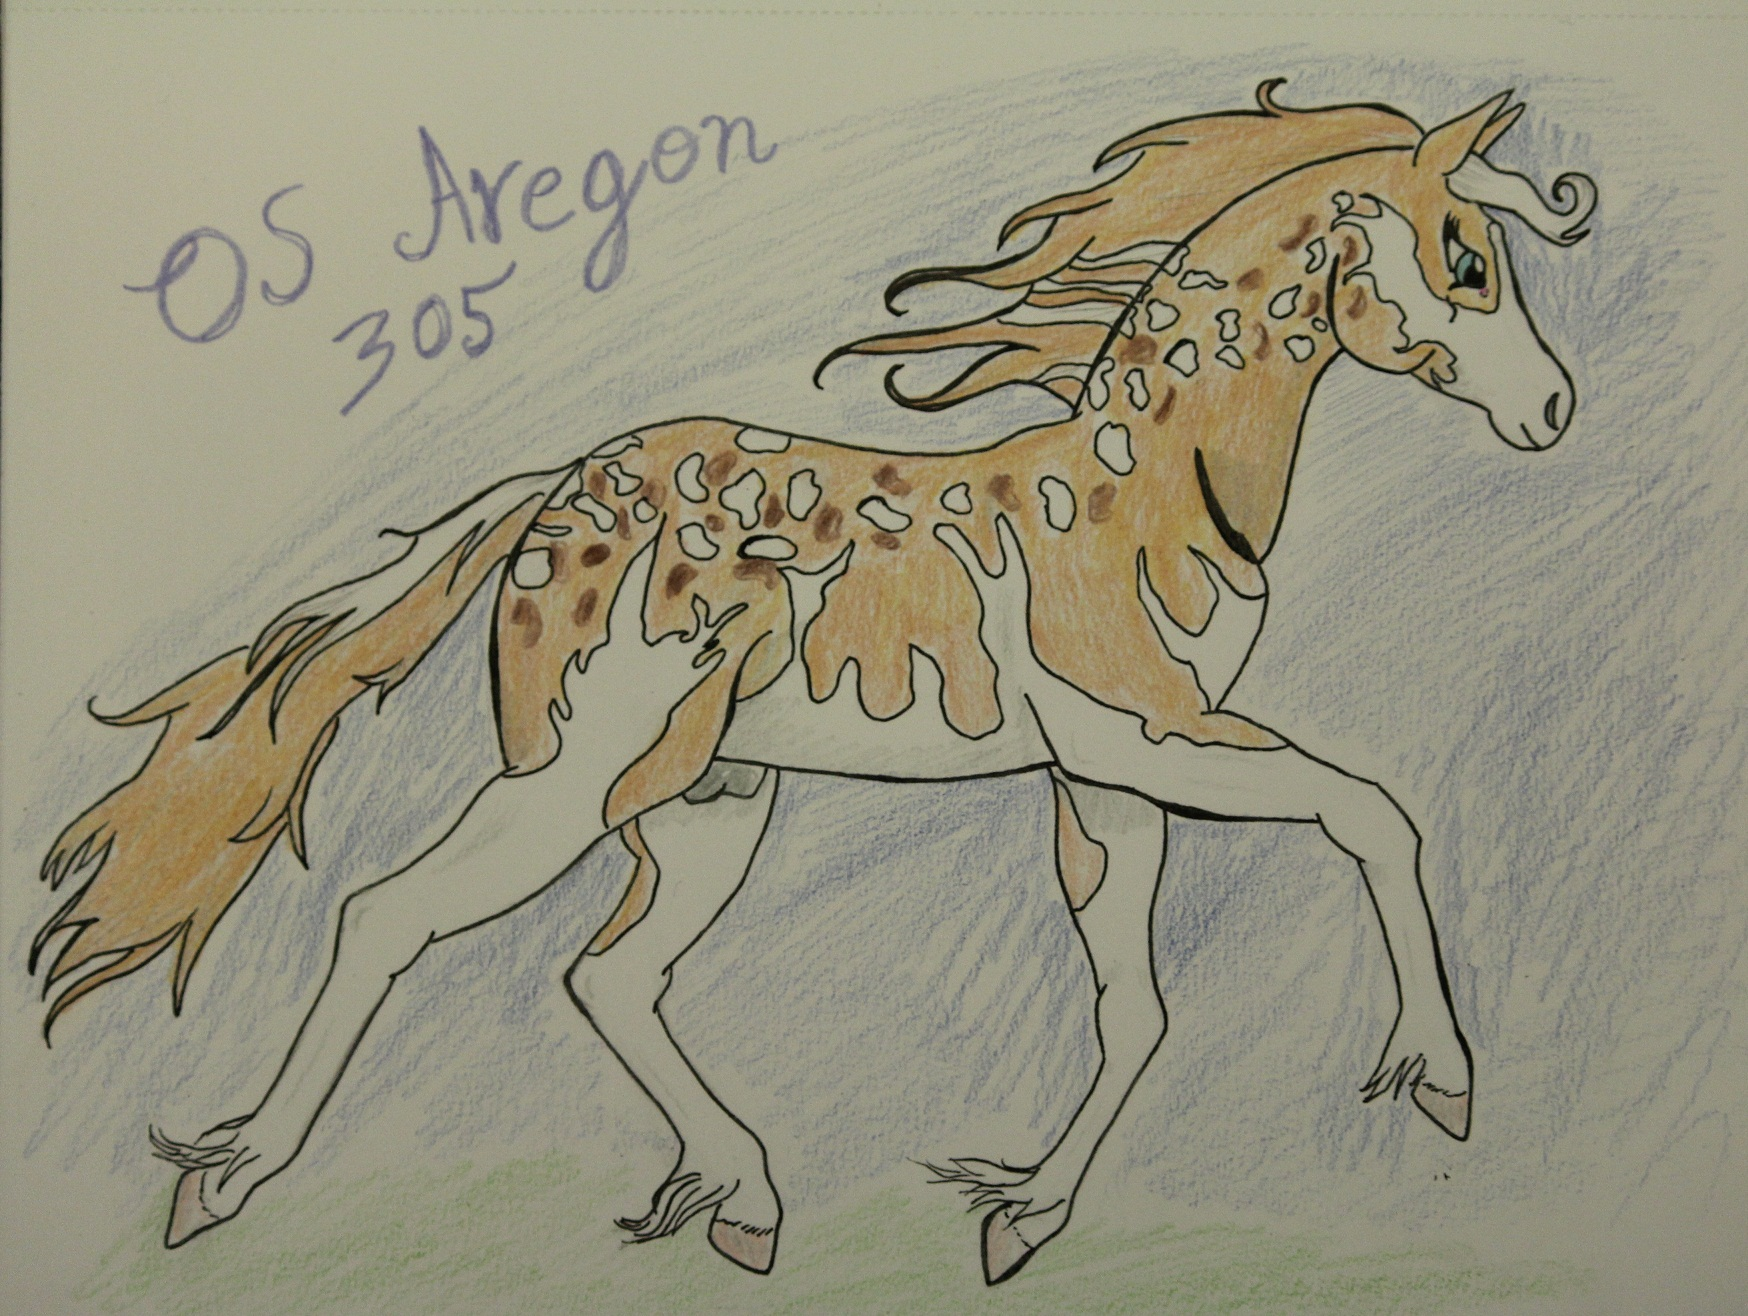 OS Aregon 305* - official ref by Nuuhku87